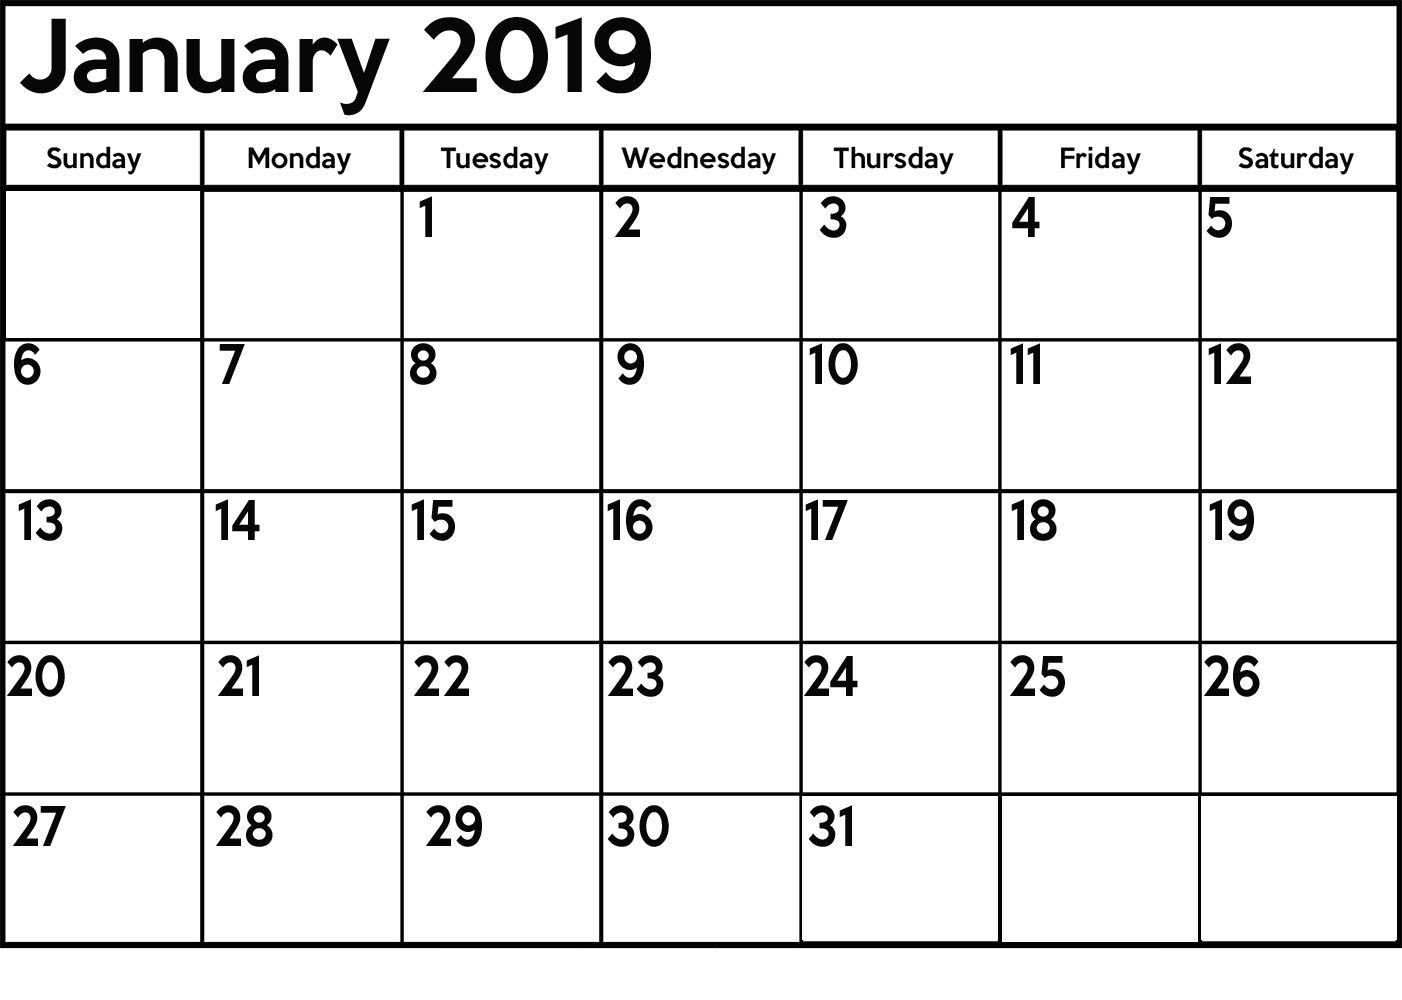 Jan Calendar 2019 Template January2019 Jan2019calendar